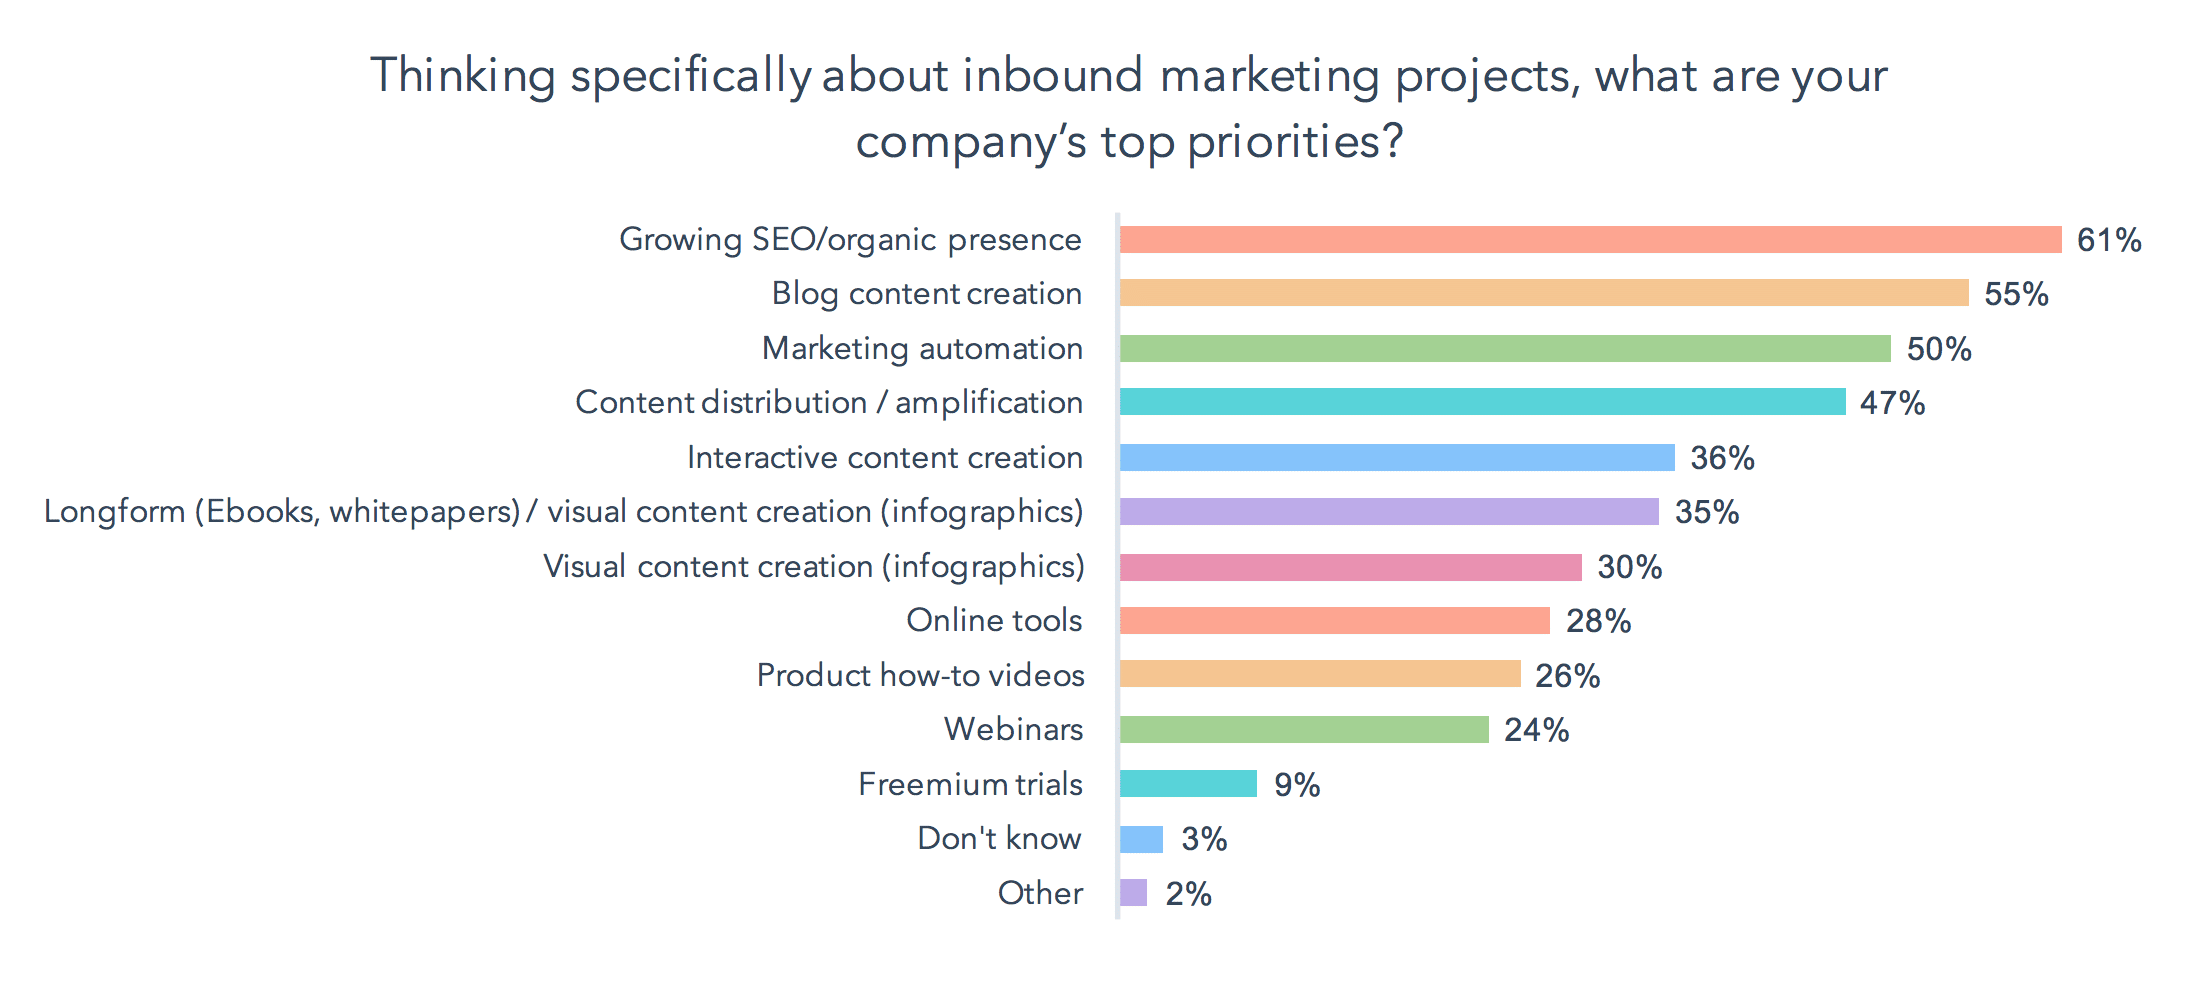 Inbound marketing goals include SEO, content creation, and automation